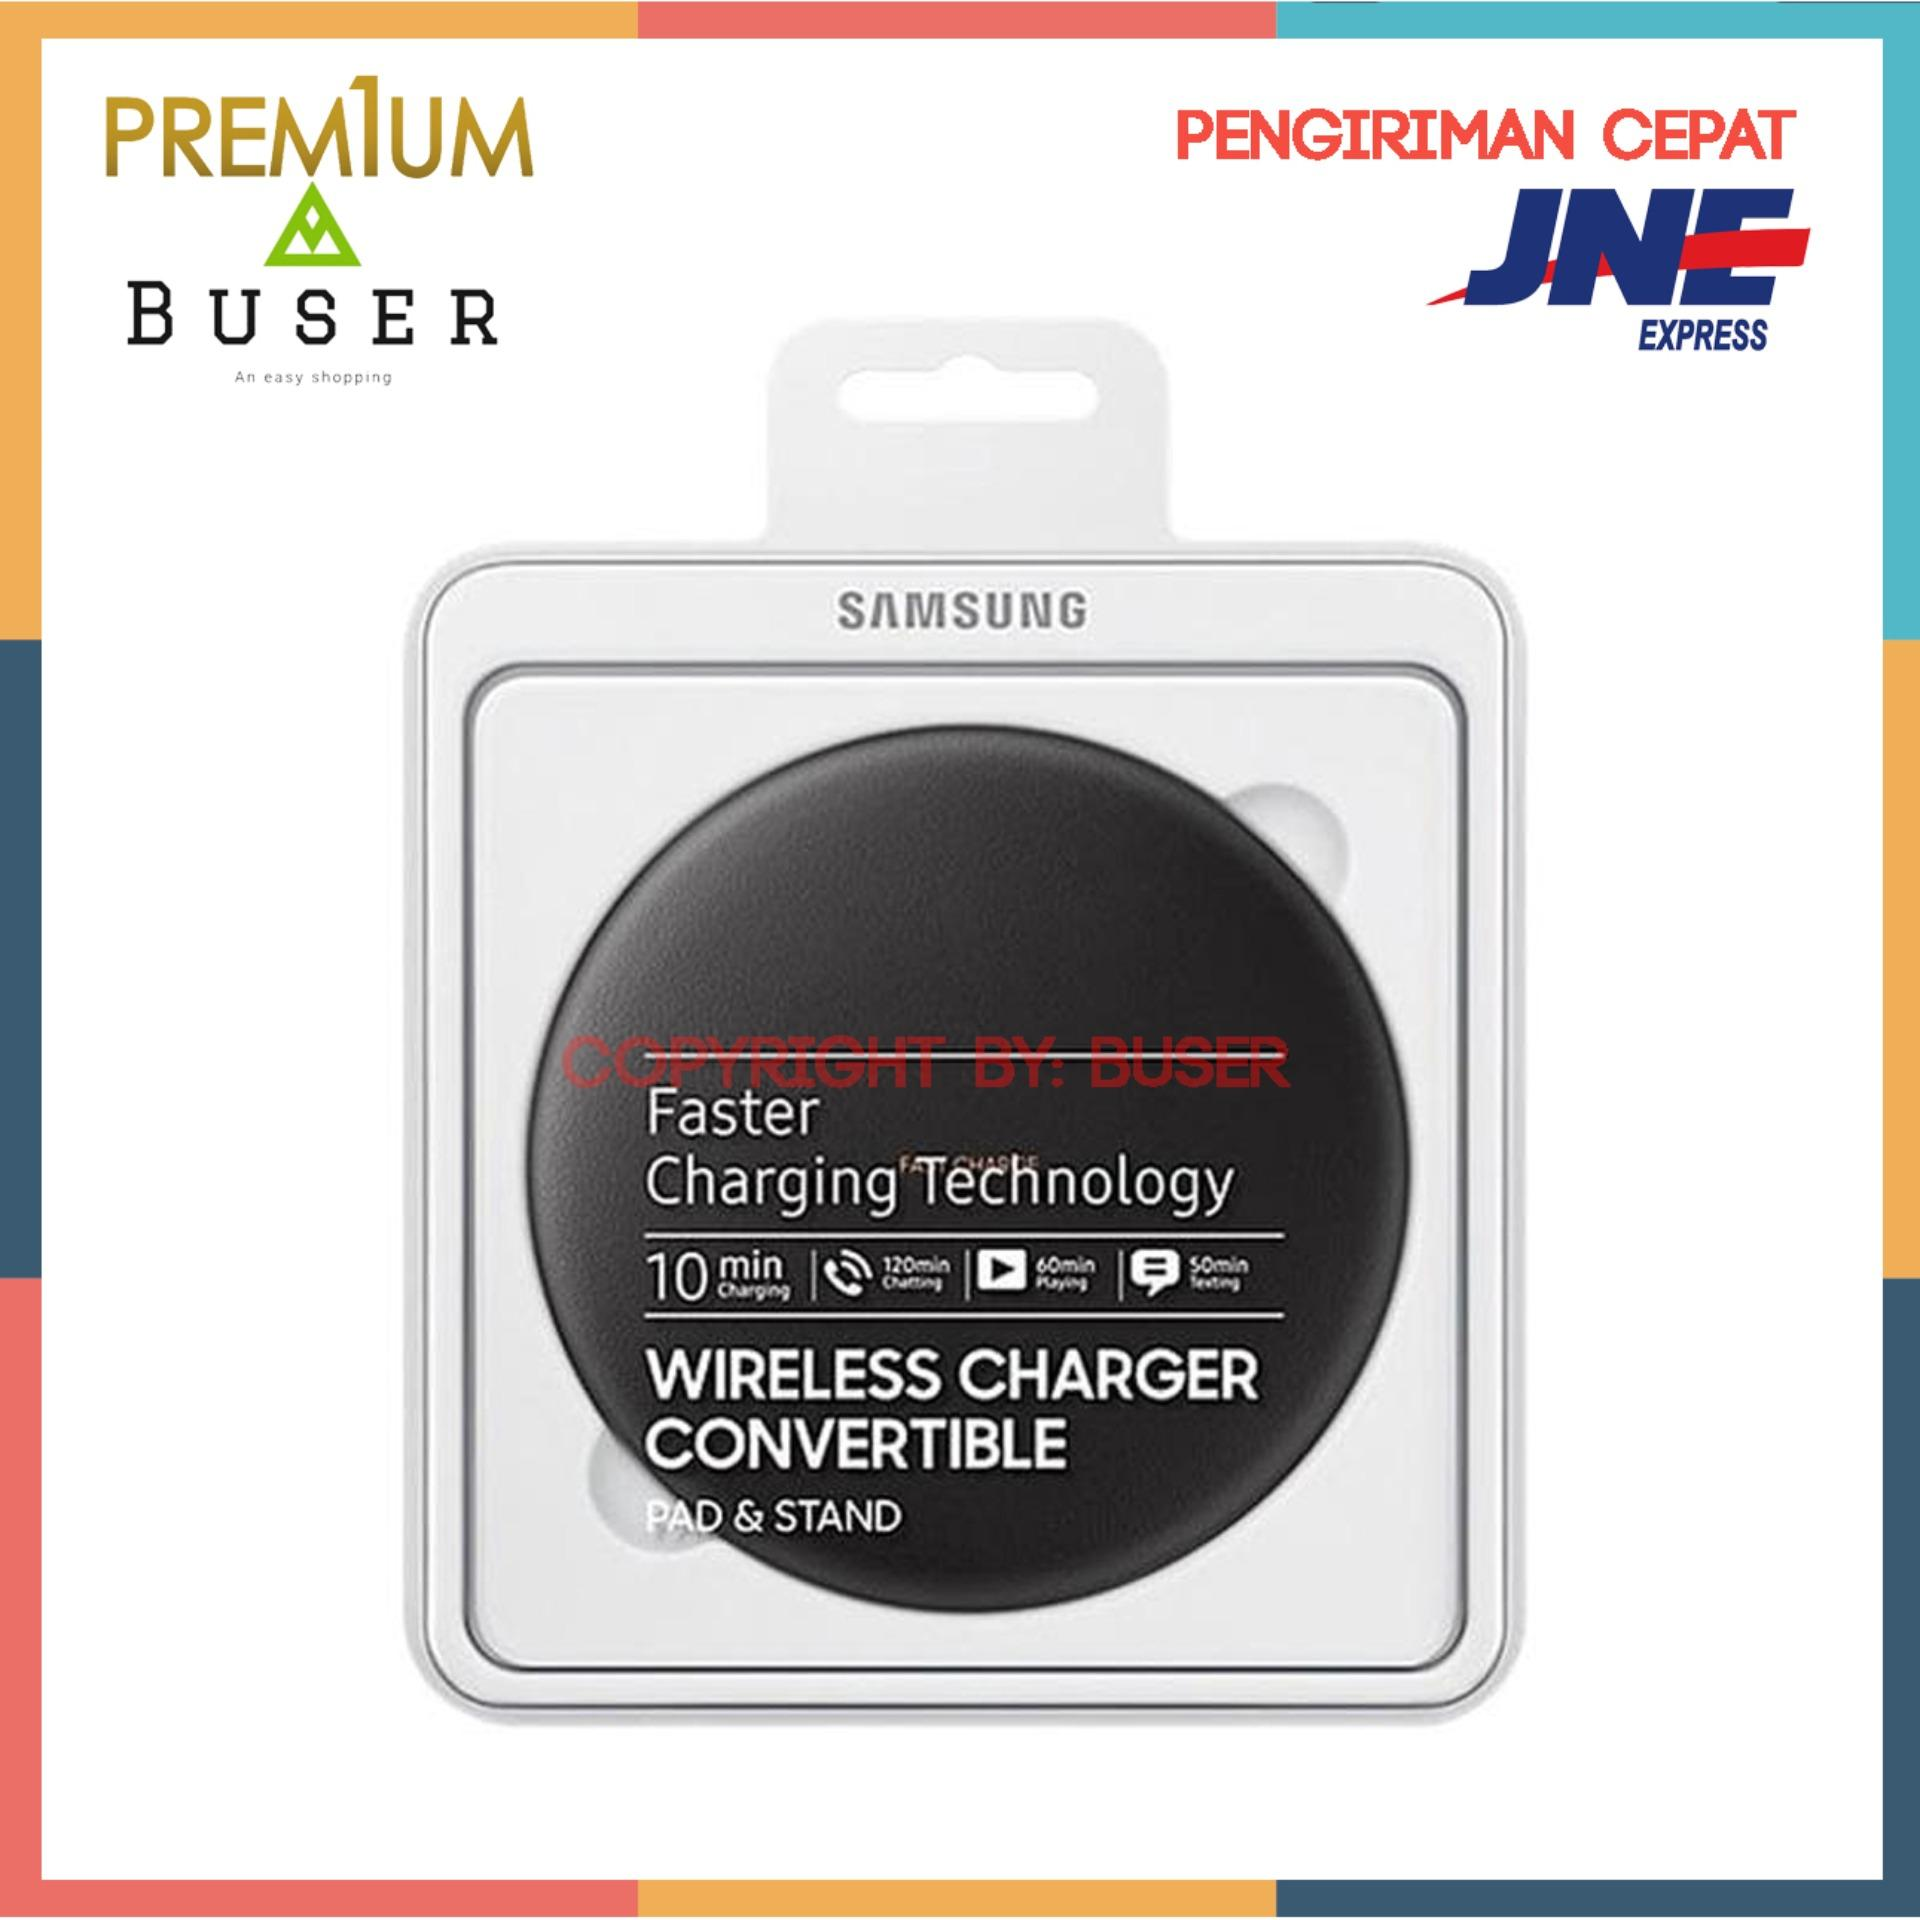 Samsung Convertible Wireless Charger Fast Charging S8 Original Hitam Idr975000